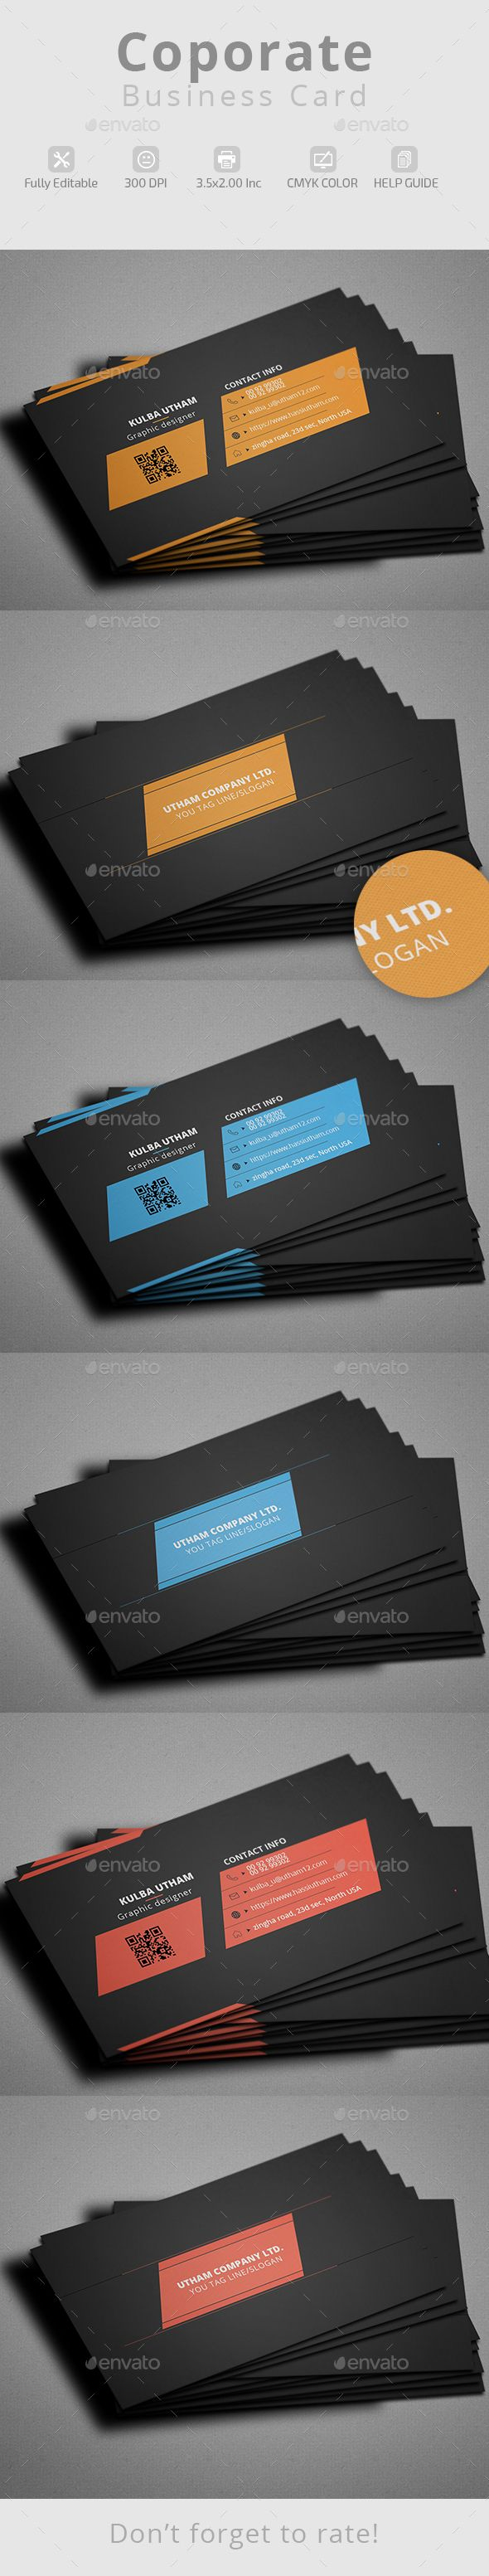 9 Best Design Tool Templates Minimalist Business Cards Images On